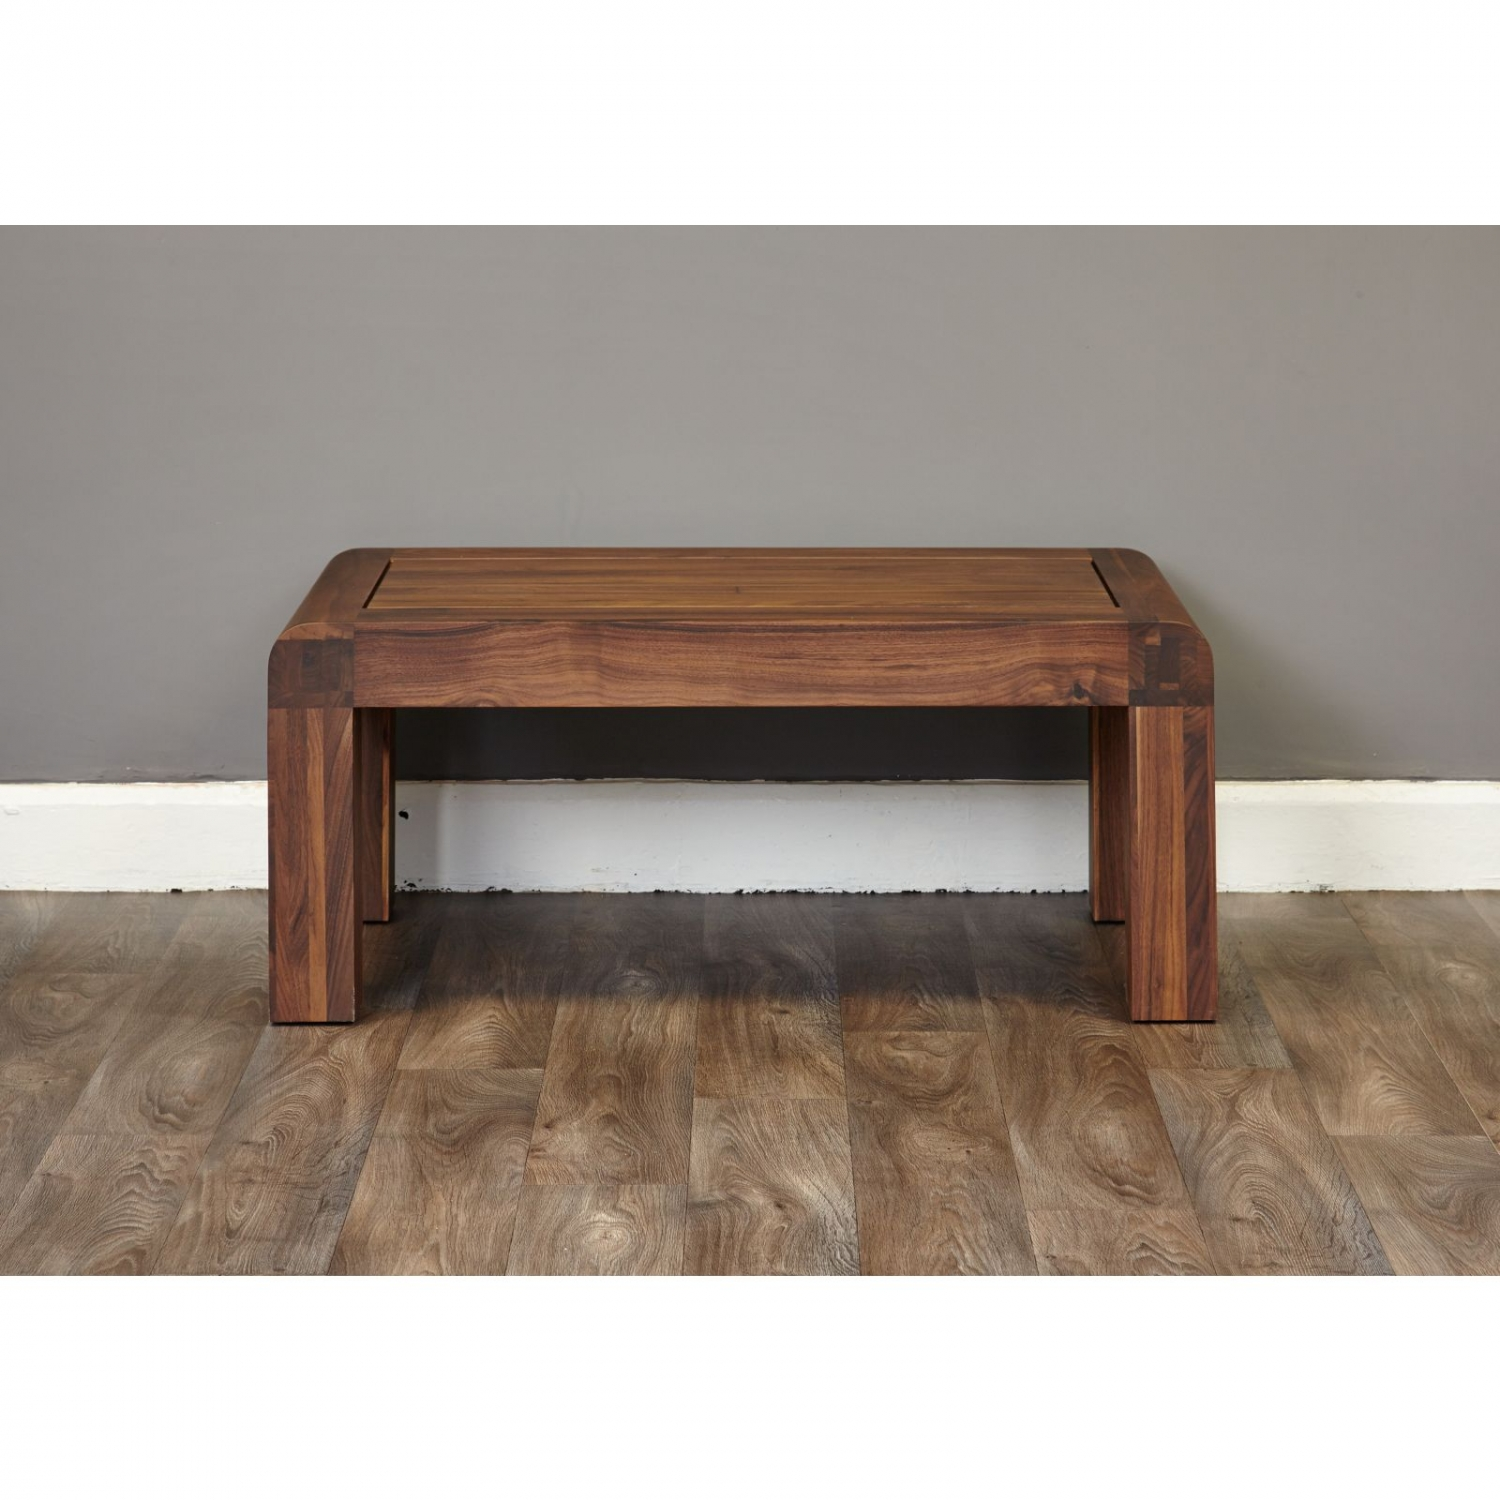 shiro dark wood solid walnut modern living room furniture open coffee